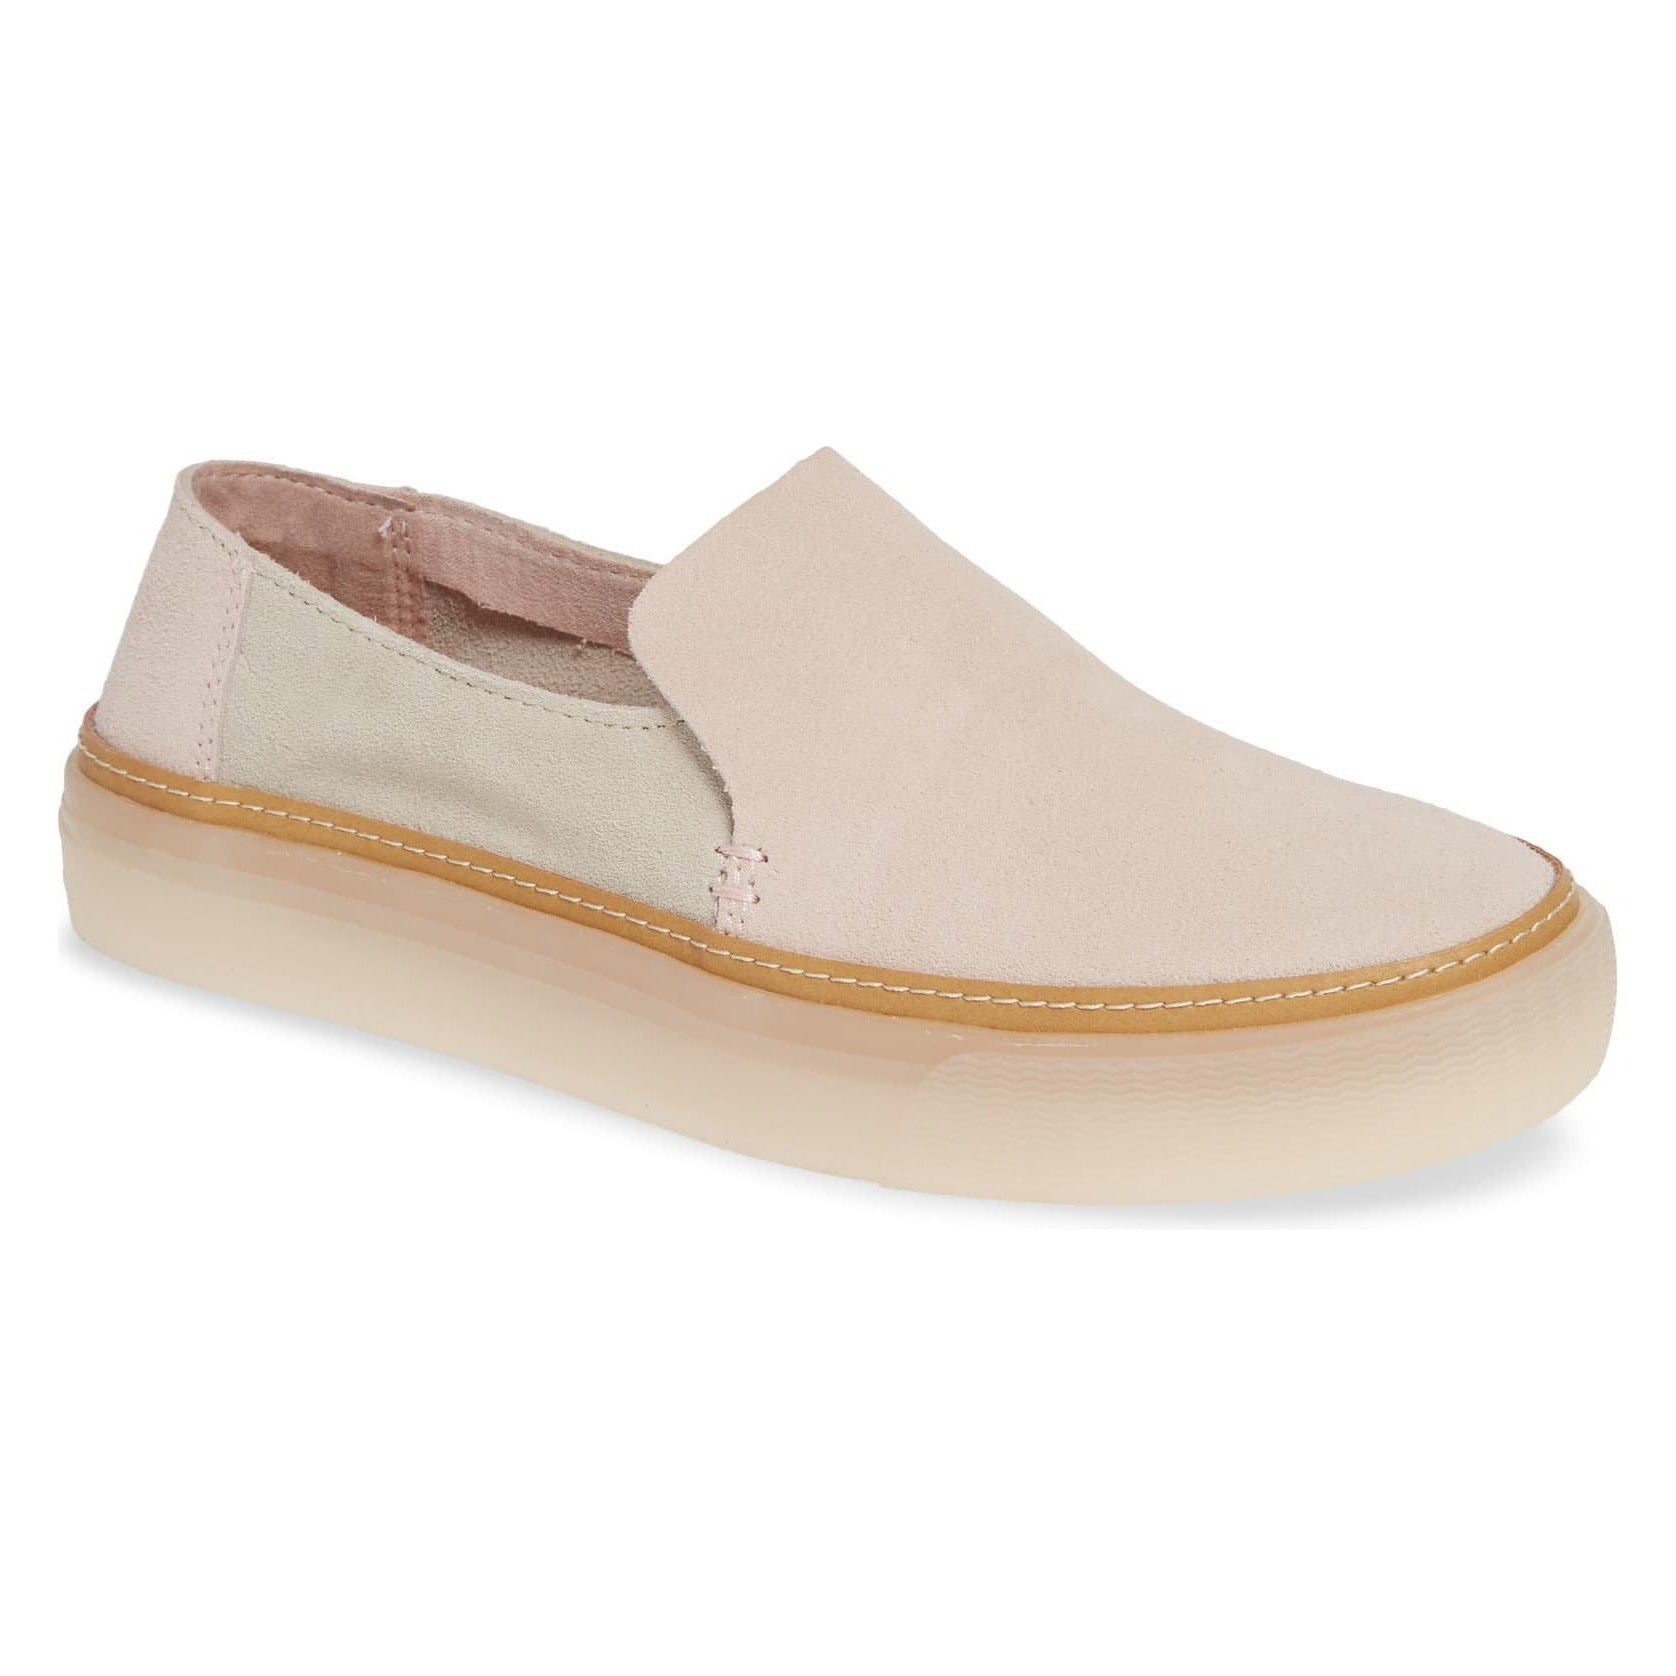 Sunset (Blush/Birch Suede) Slip-On Platform Sneakers